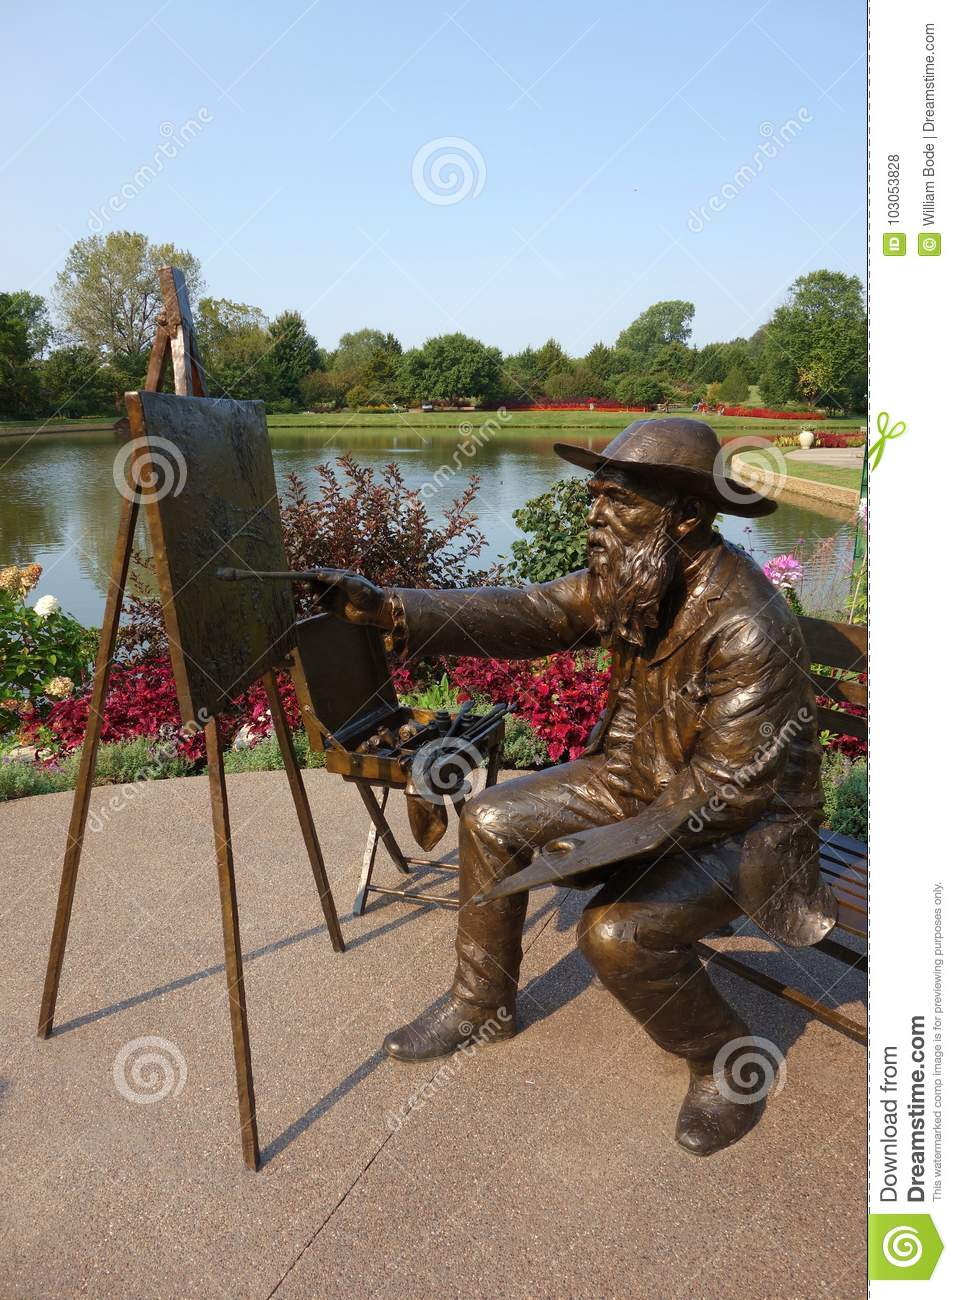 Statue Of Oscar-Claude Monet Painting Editorial Stock Photo - Image ...